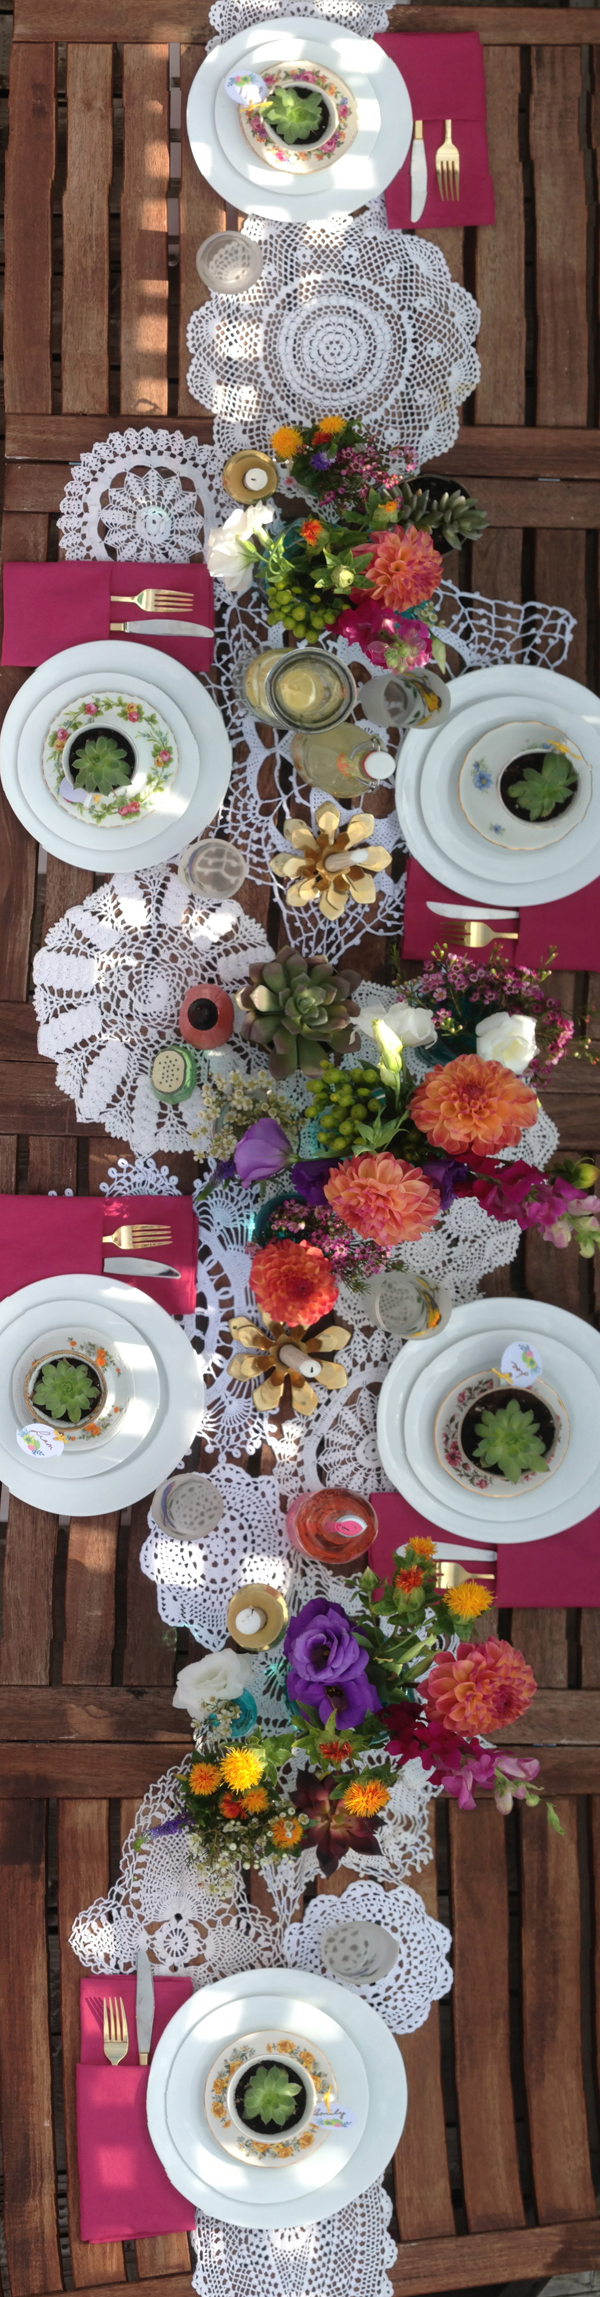 Overhead summer dinner table setting